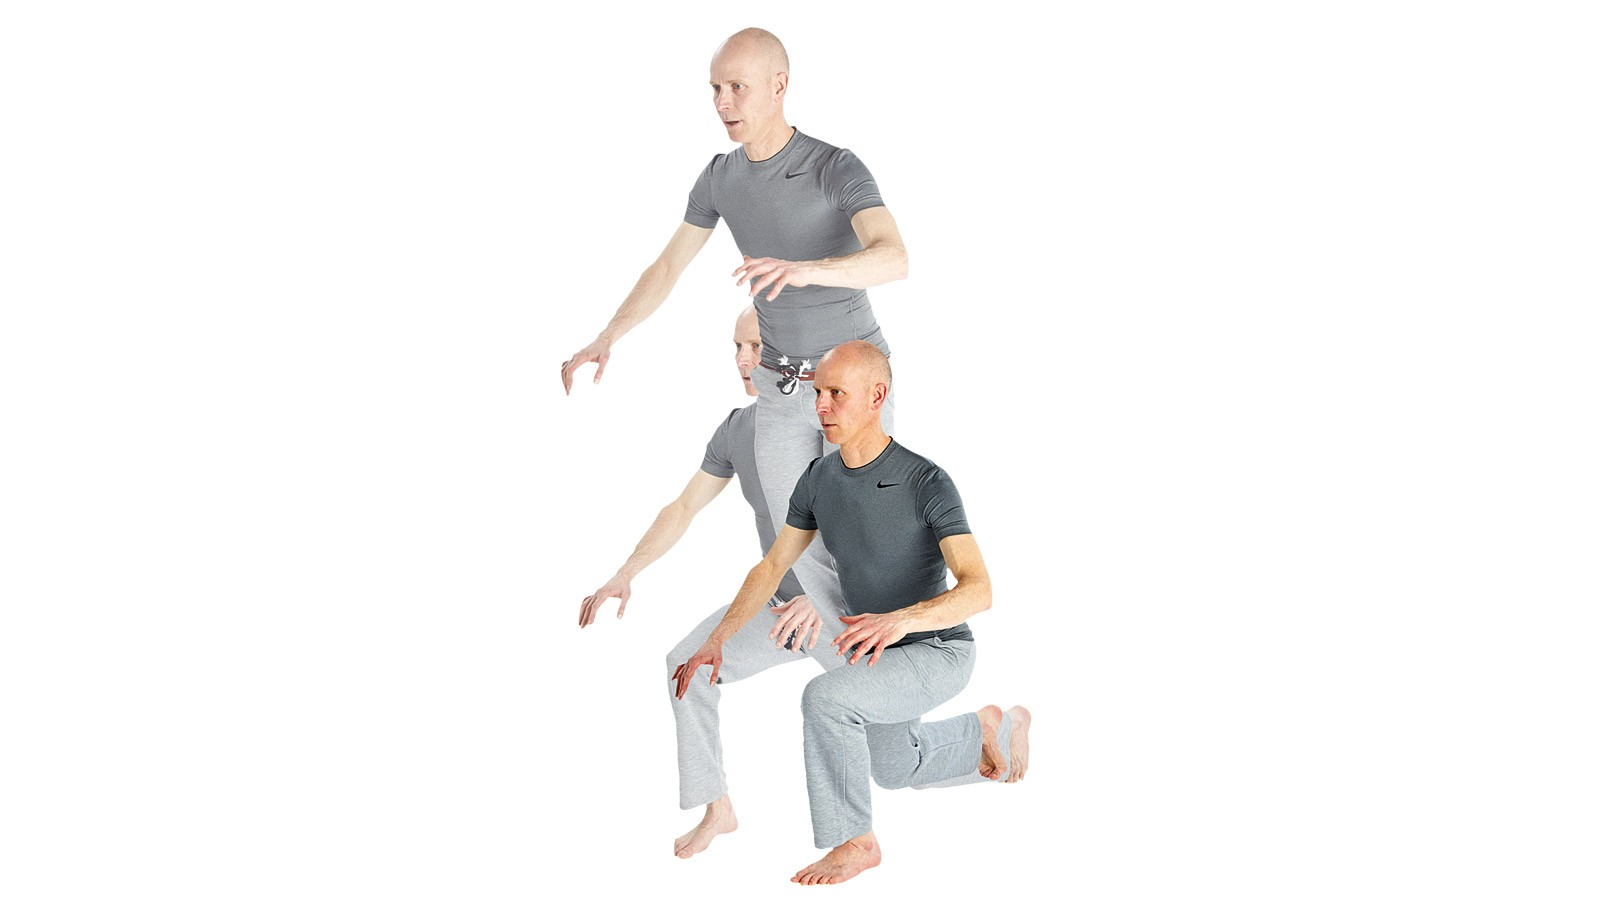 When you're totally comfortable with stepping lunges, give yourself a more intense cardio burn with these jumping lunges